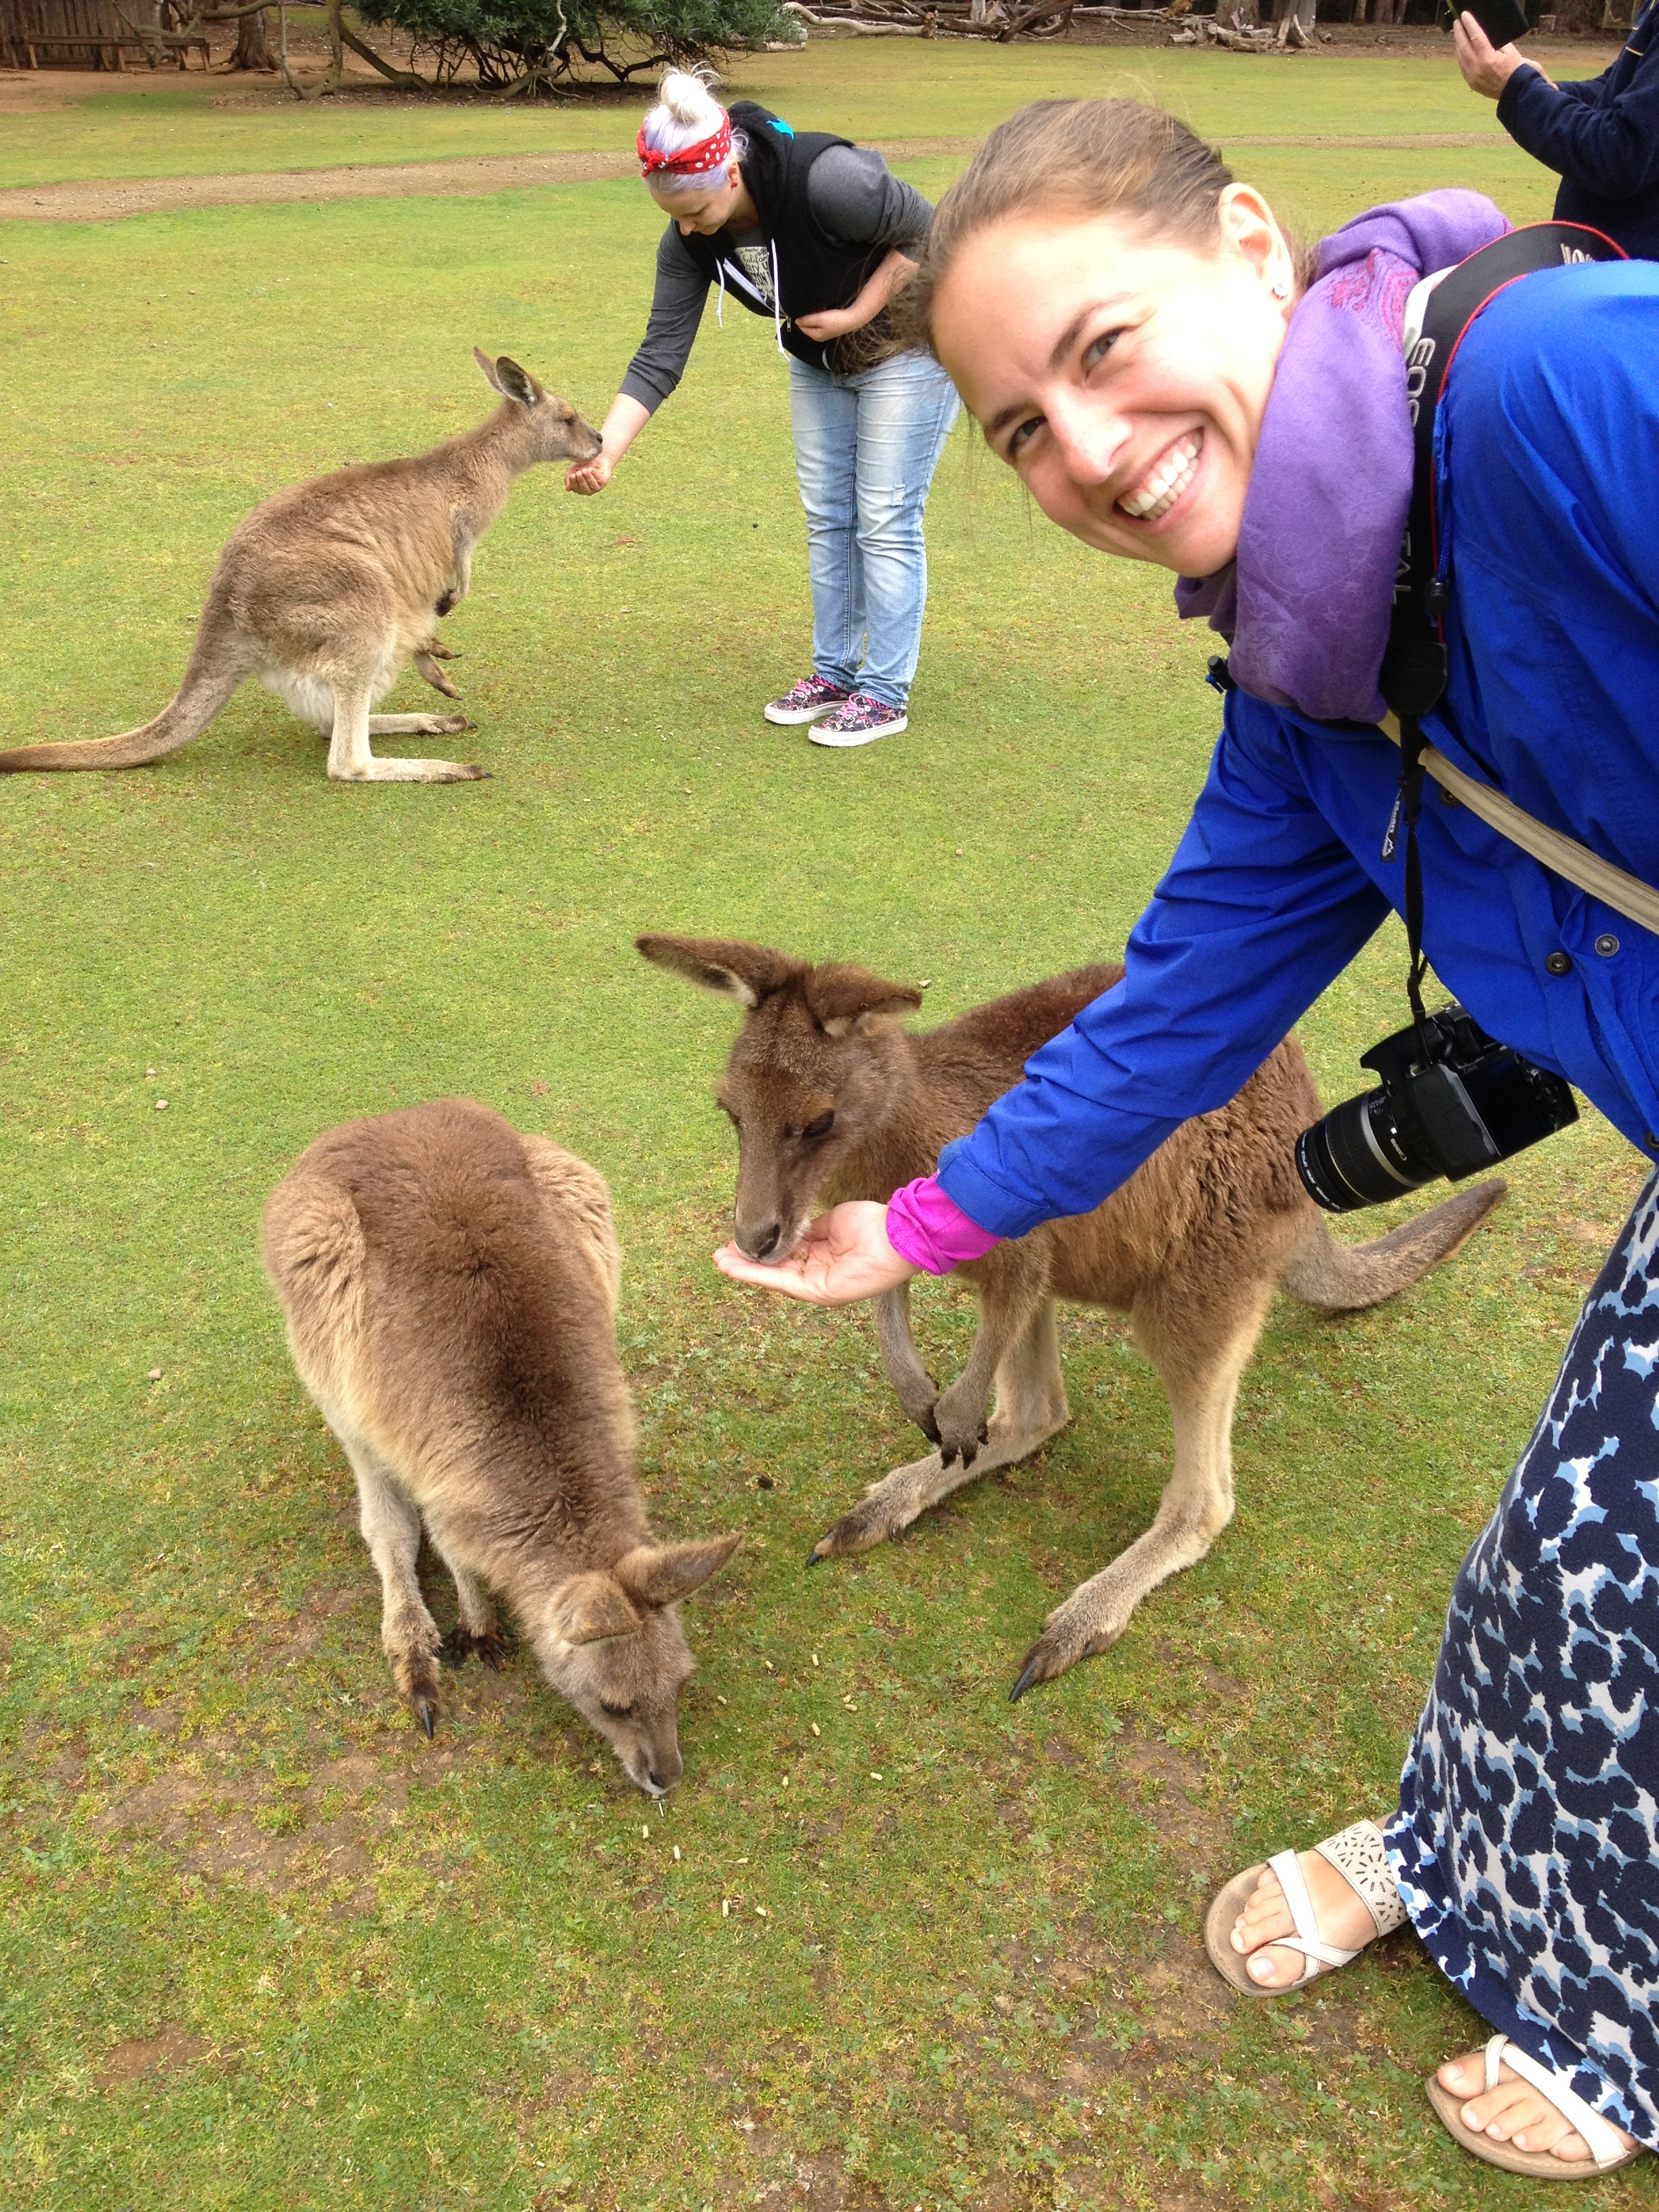 Feeding Kangaroos in Tasmania